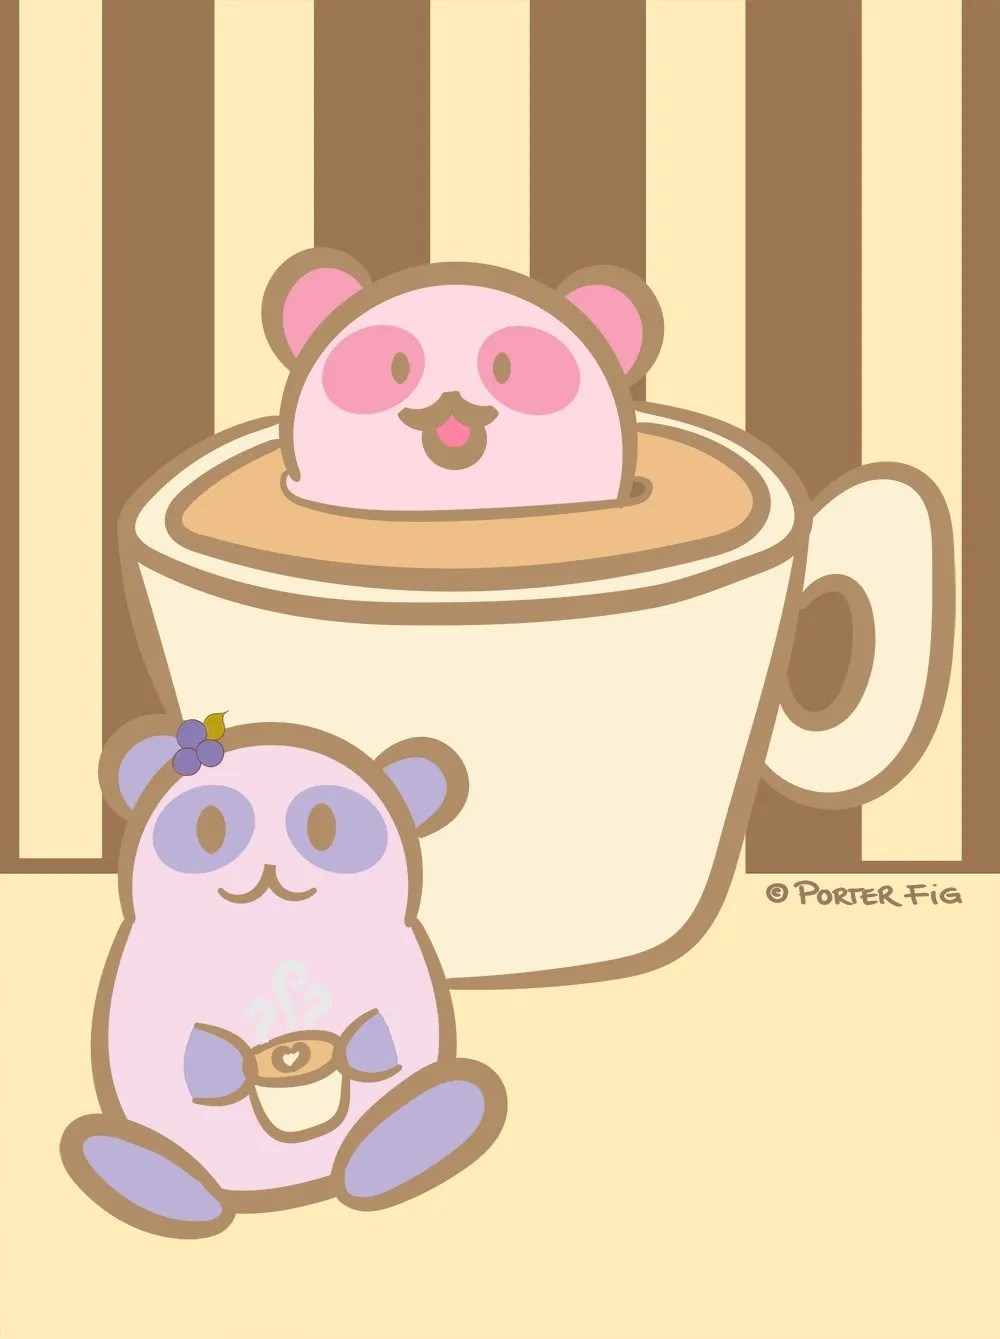 coffee and pandas by porter fig studios